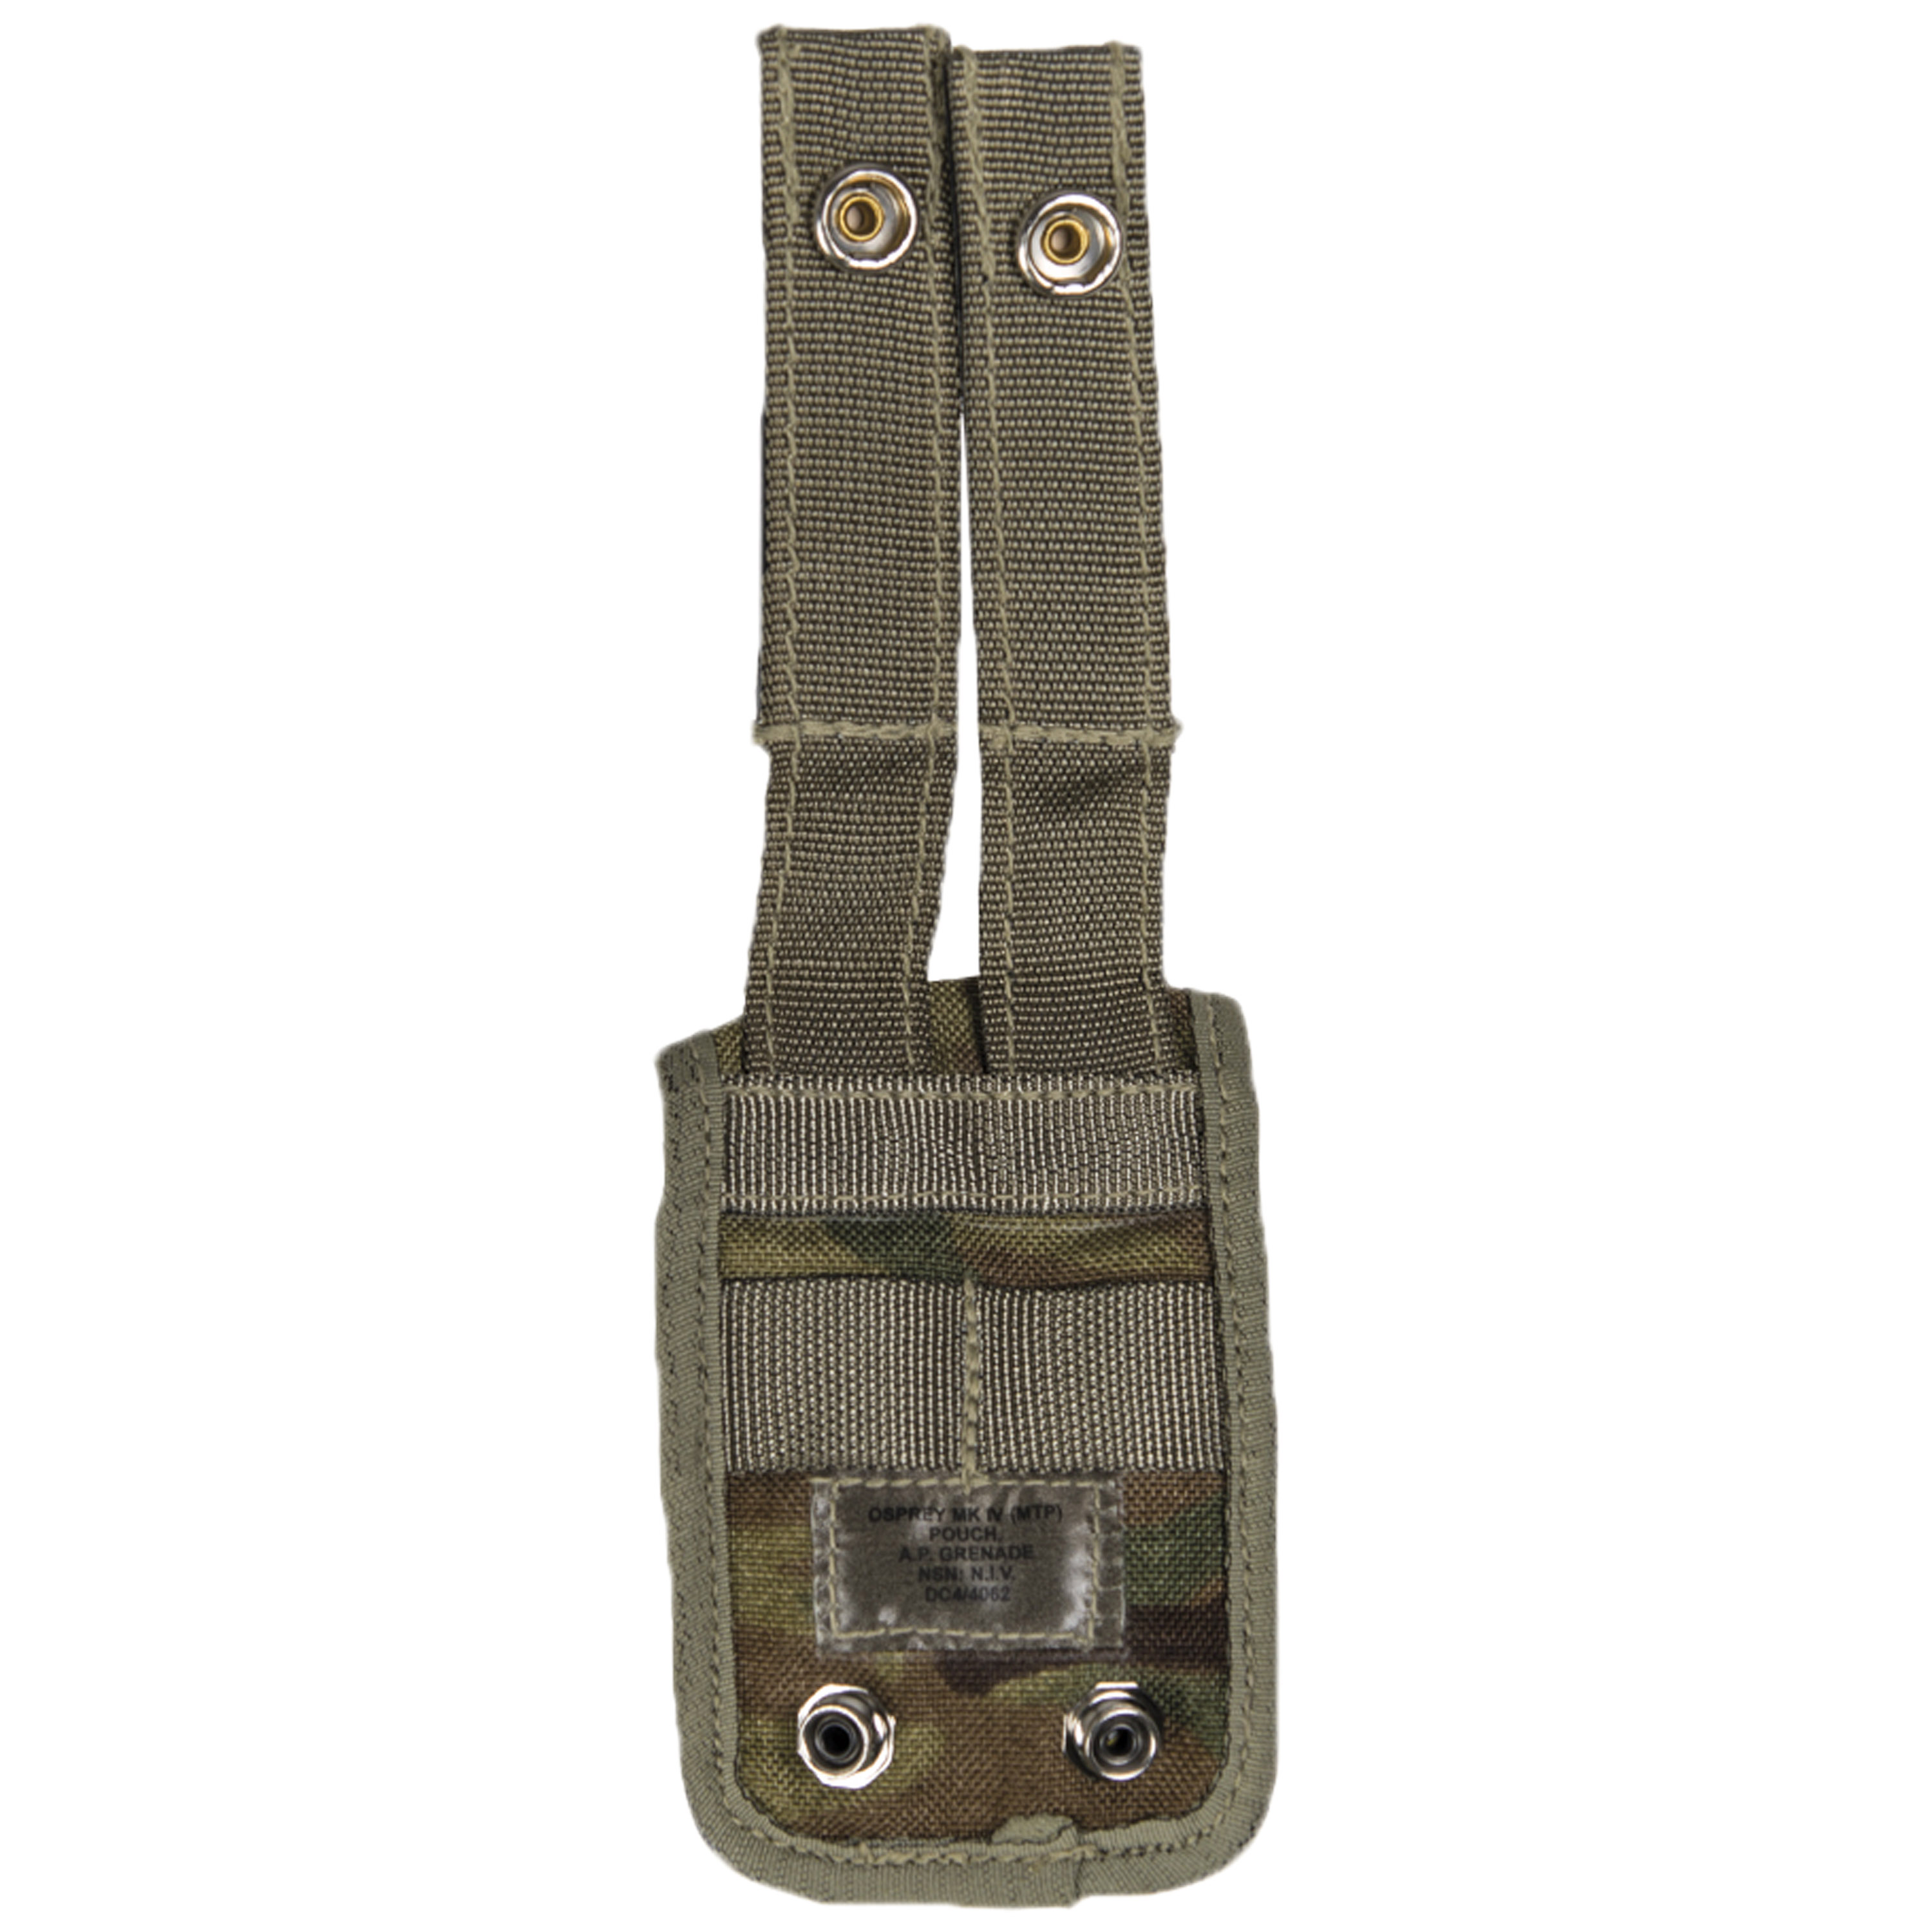 Used British Belt Pouch AP Grenade MTP Camo